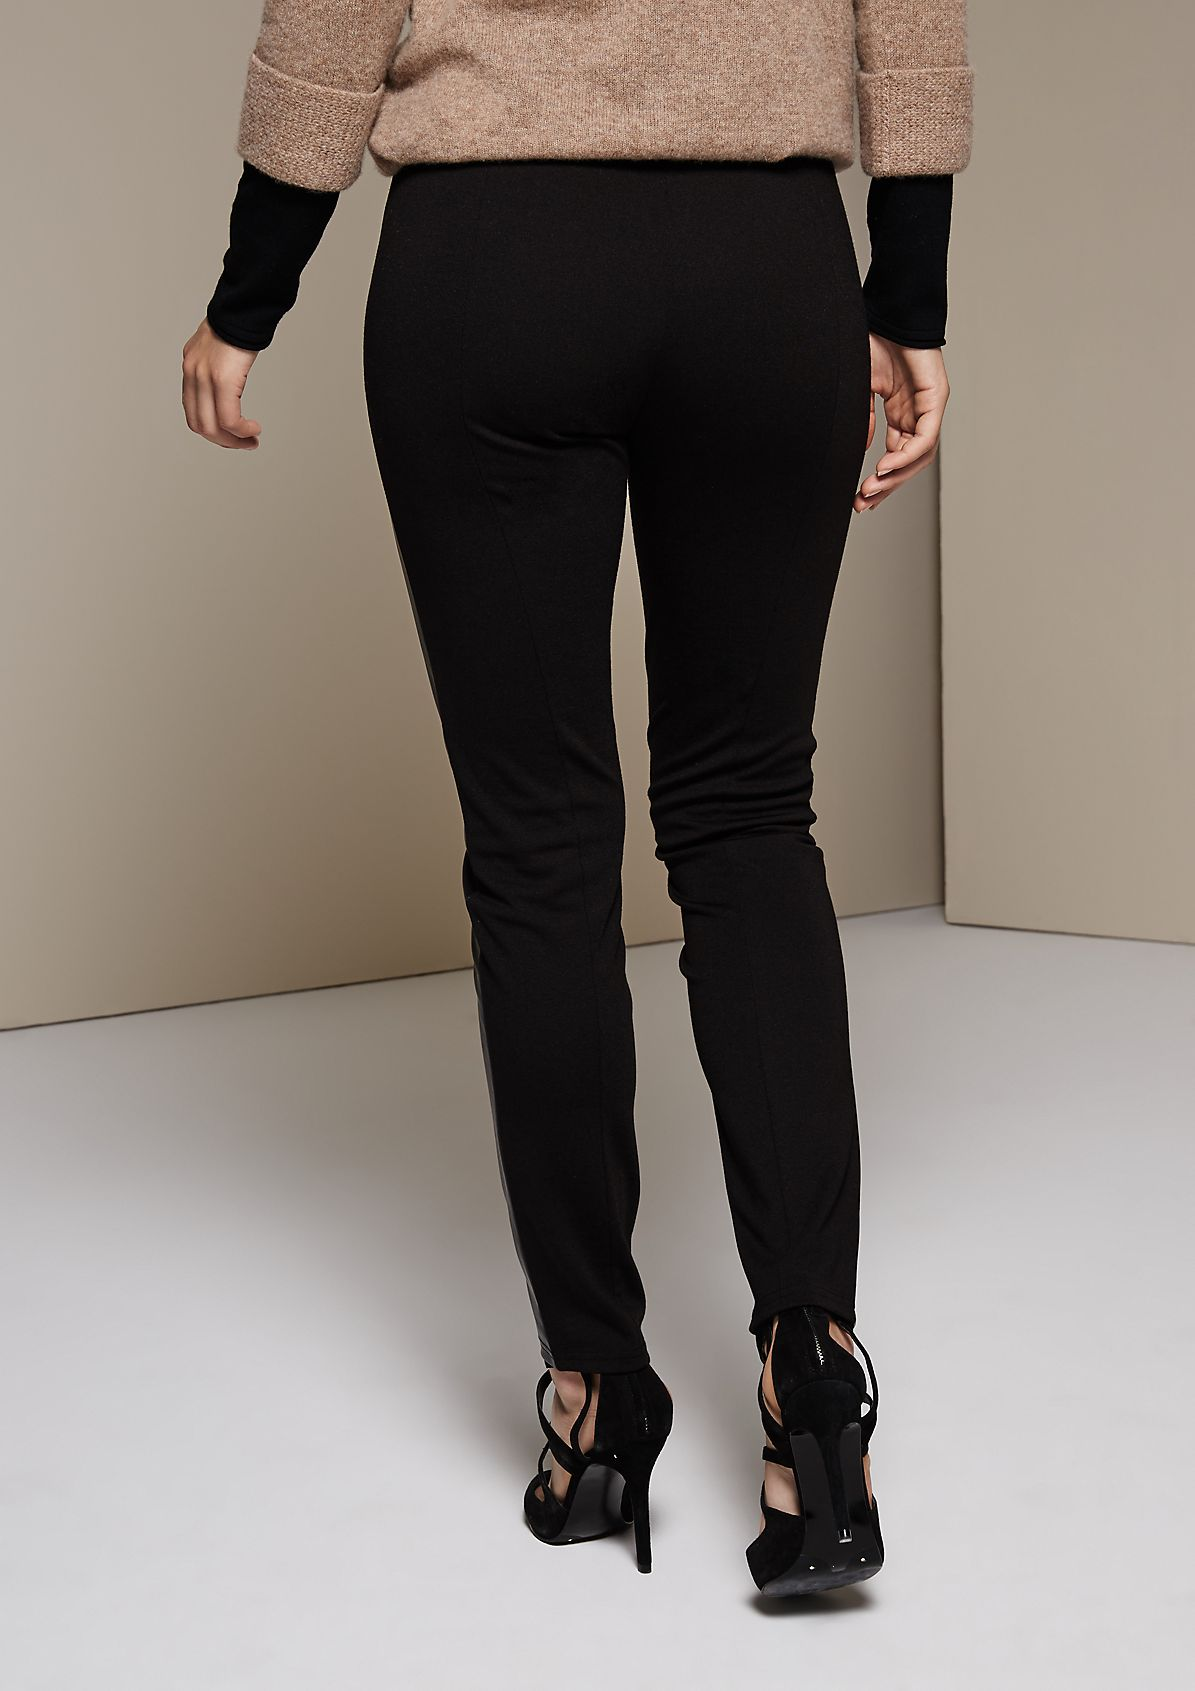 Extravagant leggings with imitation leather inserts from s.Oliver